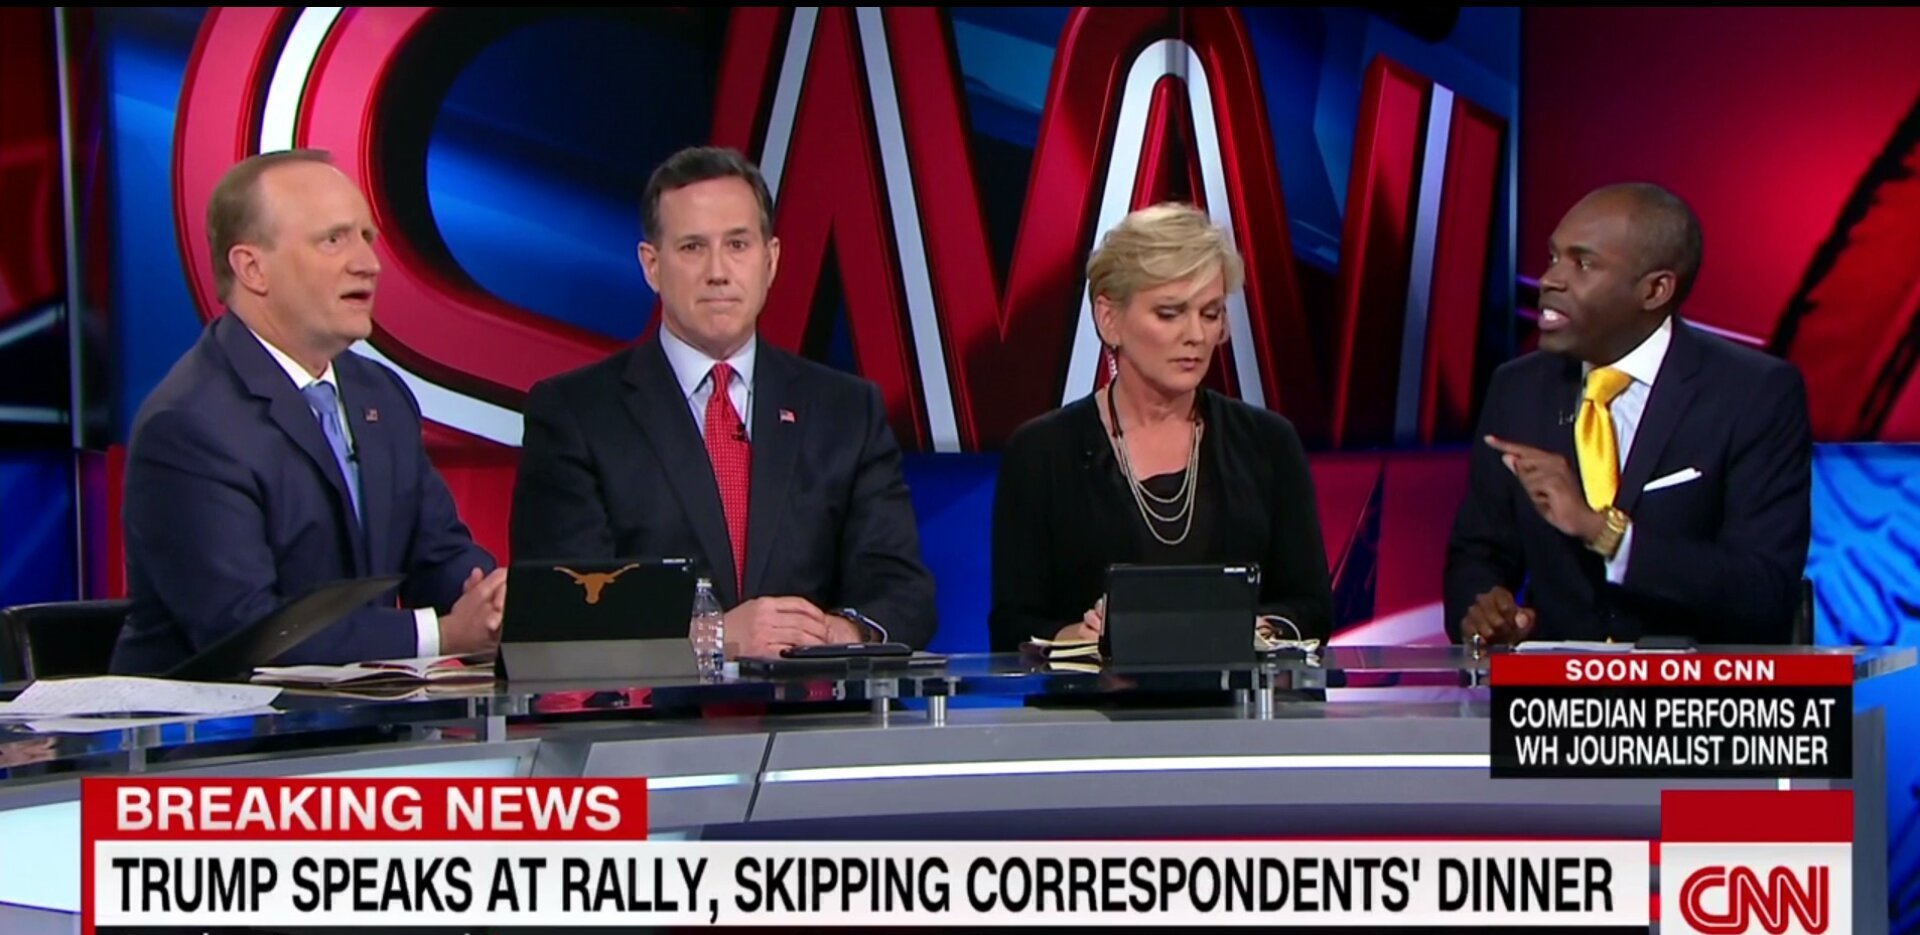 GOP Strategist Educates Befuddled CNN Panel on Why President Trump Is So Hostile to Them